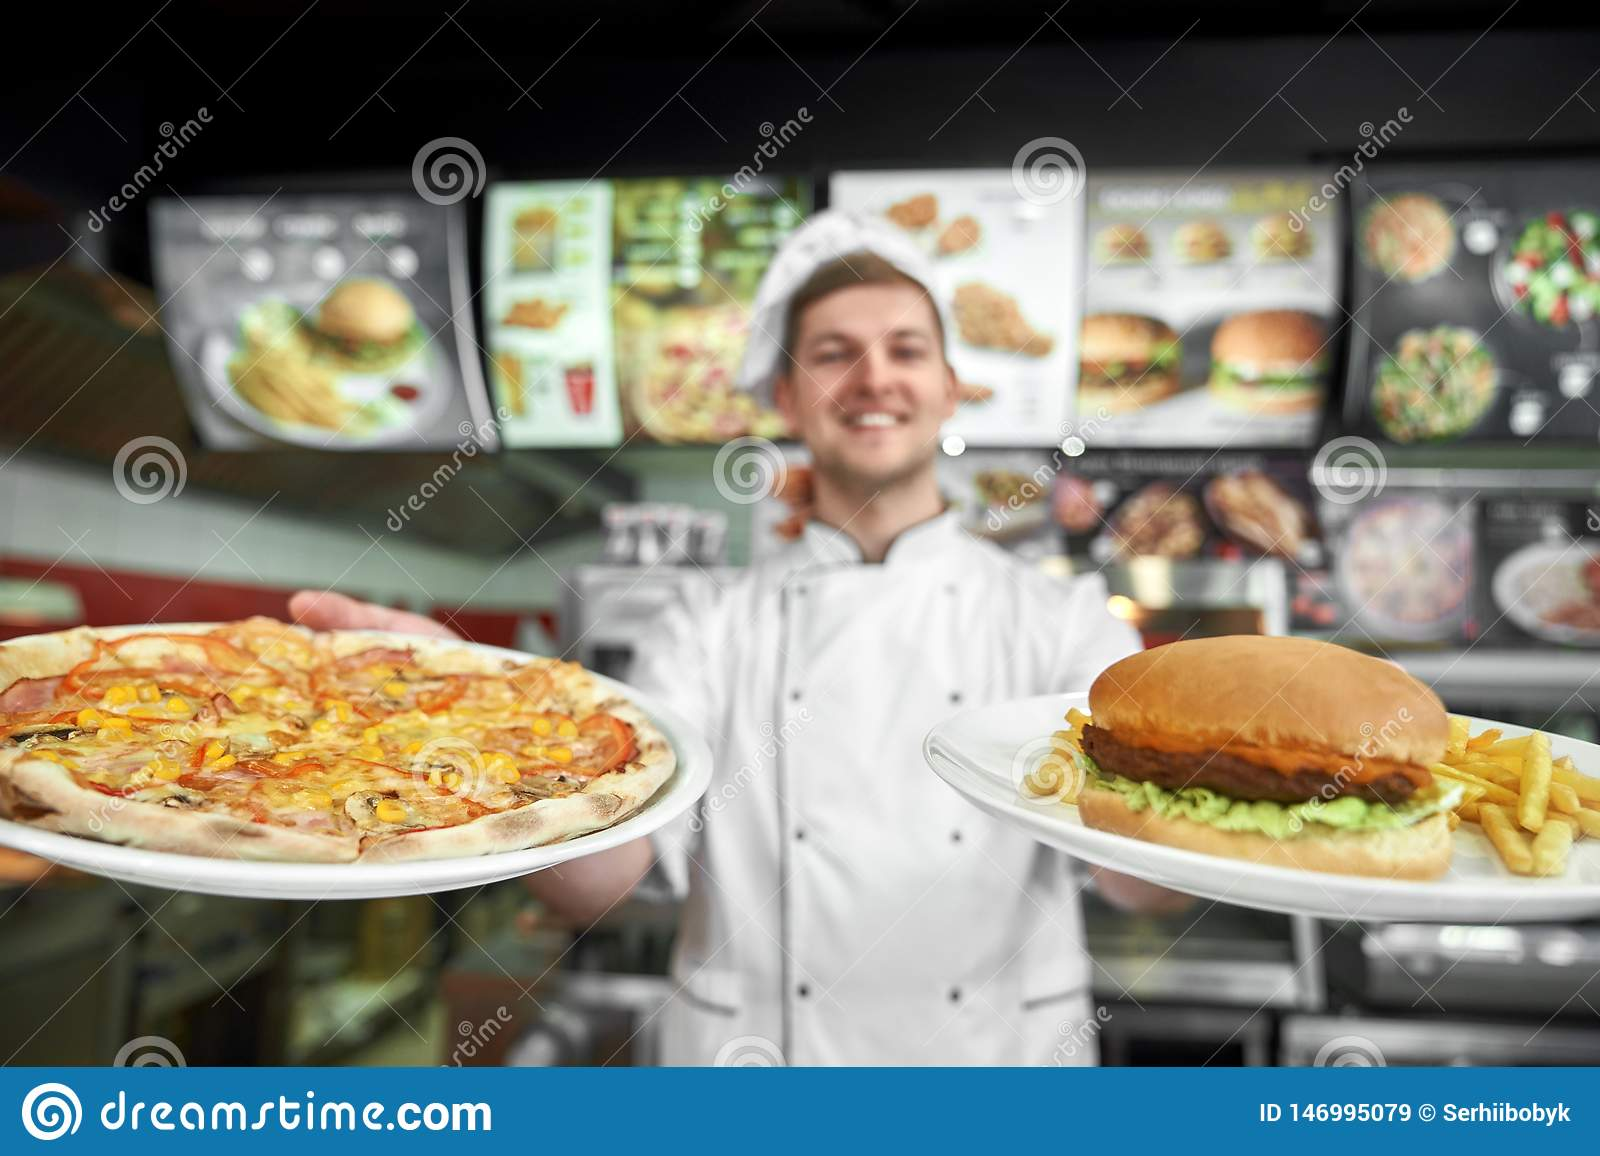 Pizza and haumburger with free potato in hands of male cook